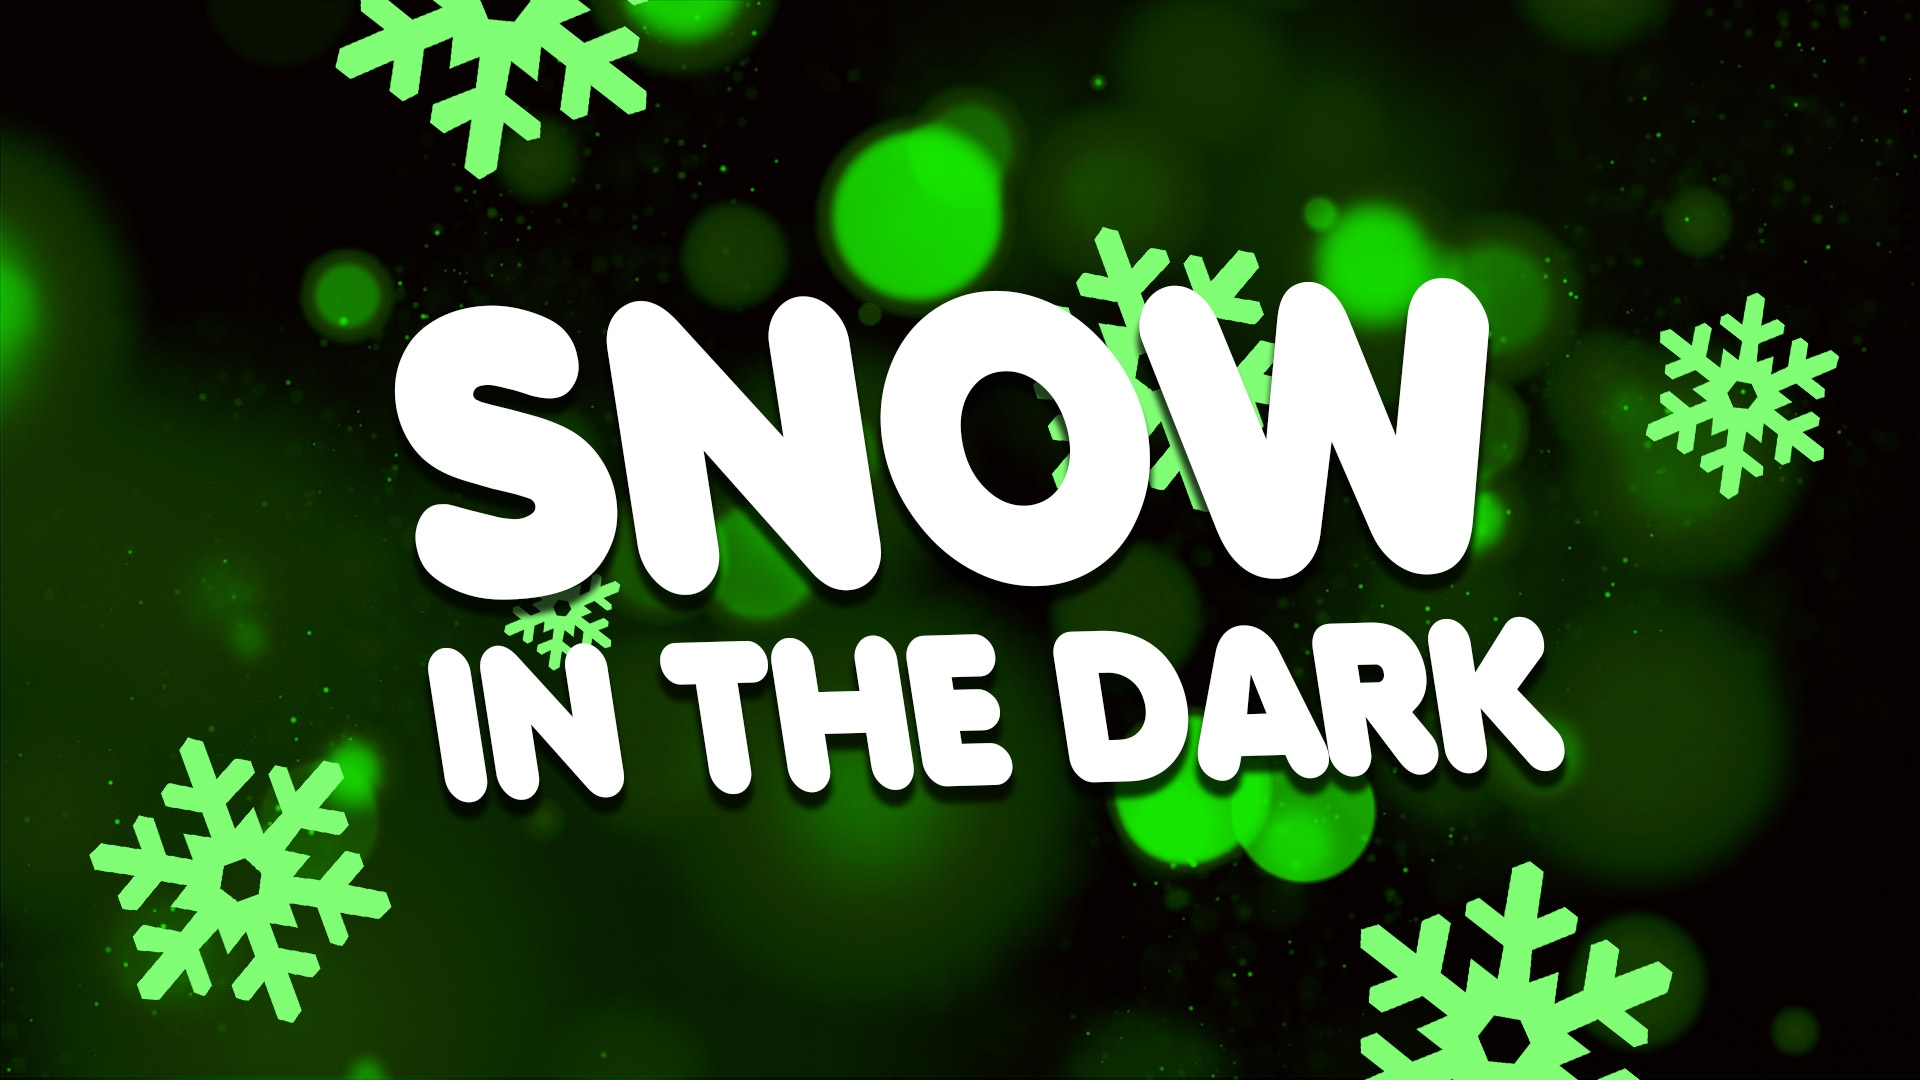 Snow In The Dark Party - Grab a ticket for Just £3 - Last night of term in Sub Zero